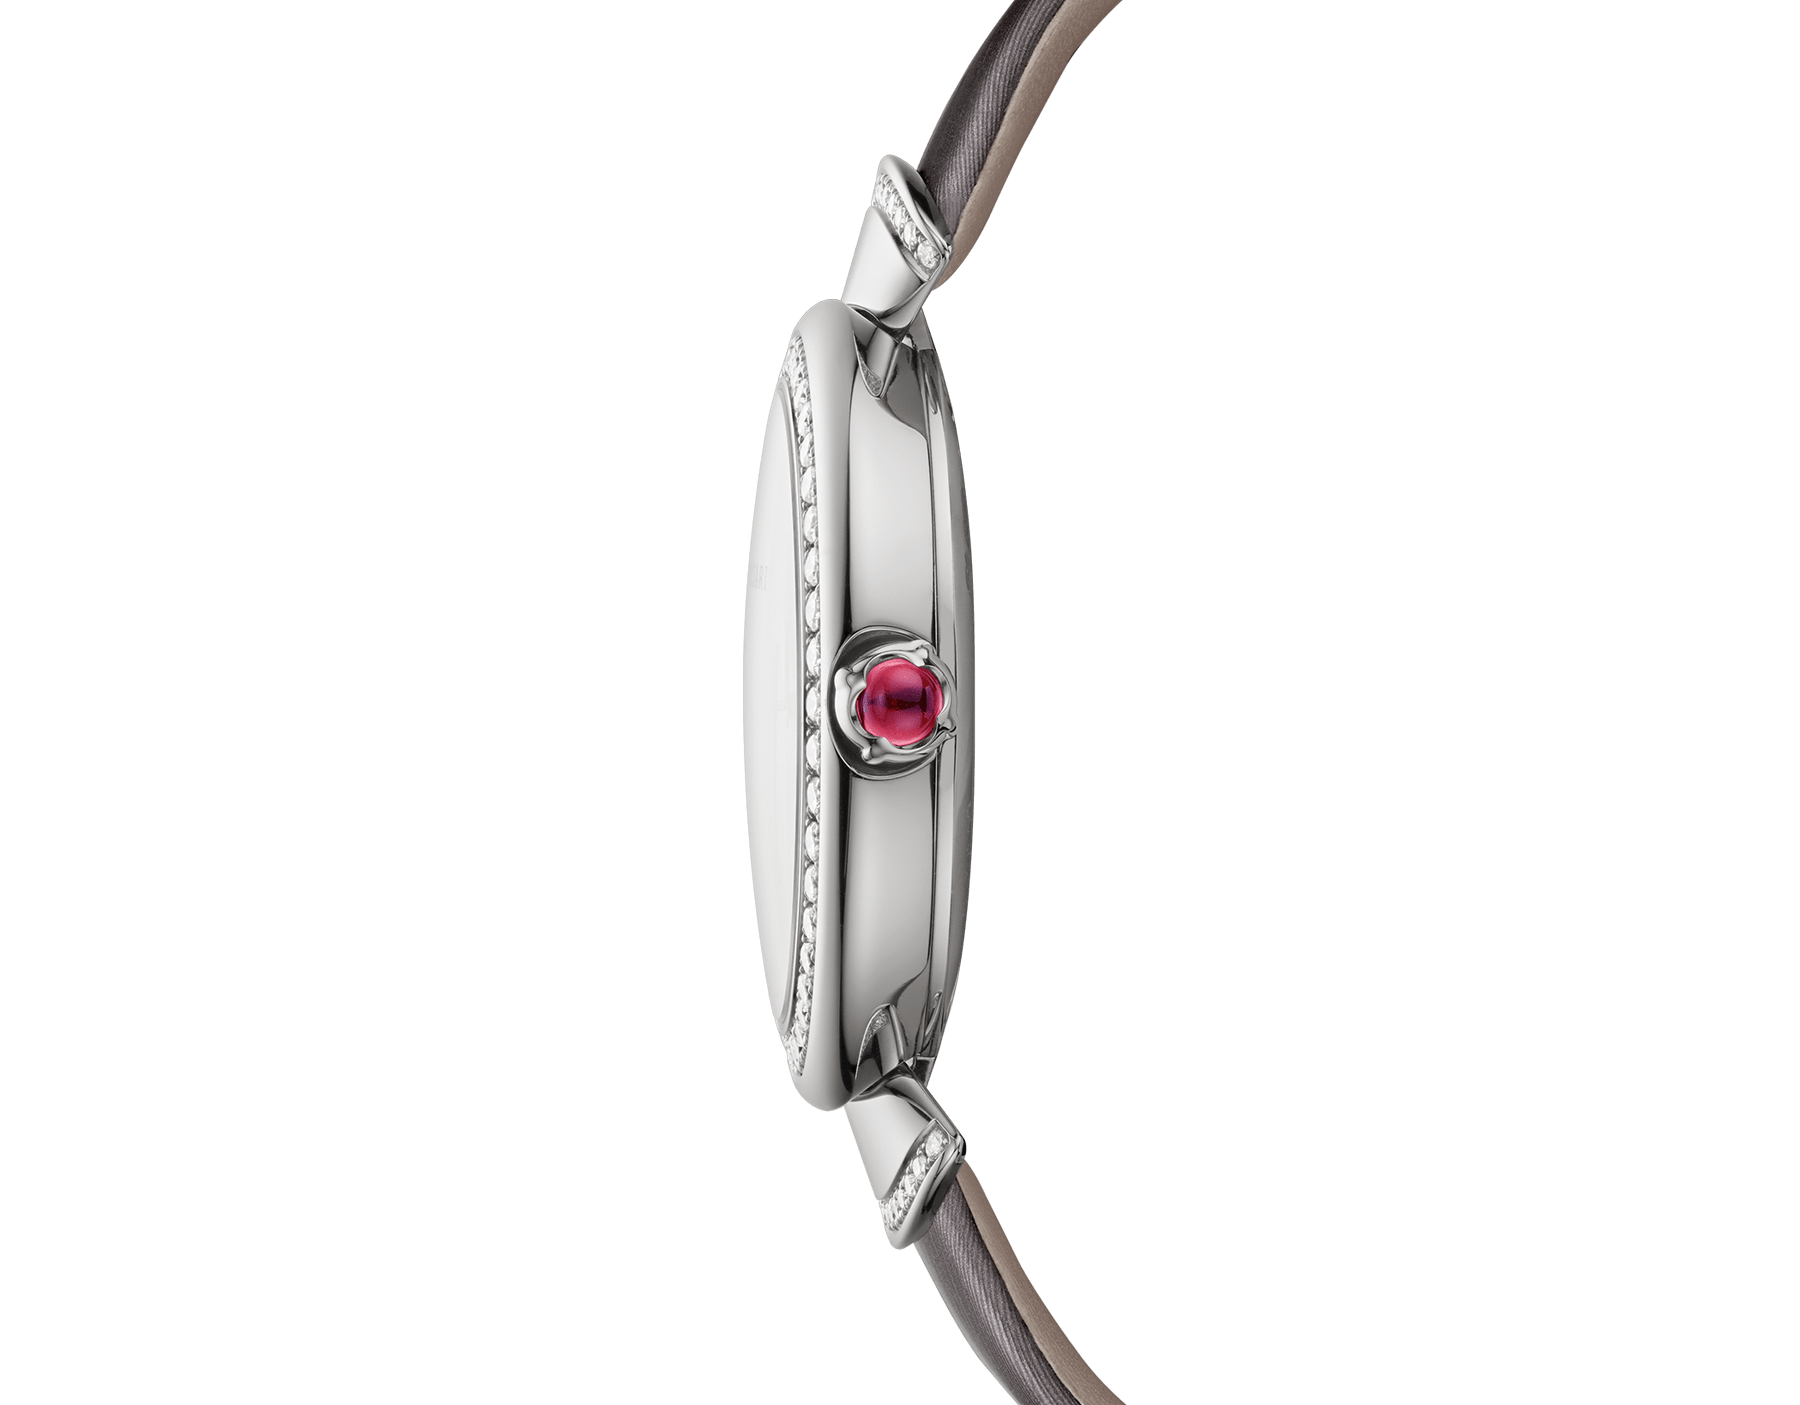 DIVAS' DREAM watch with 18 kt white gold case set with brilliant-cut diamonds, acetate dial, diamond indexes and grey satin bracelet 102576 image 3